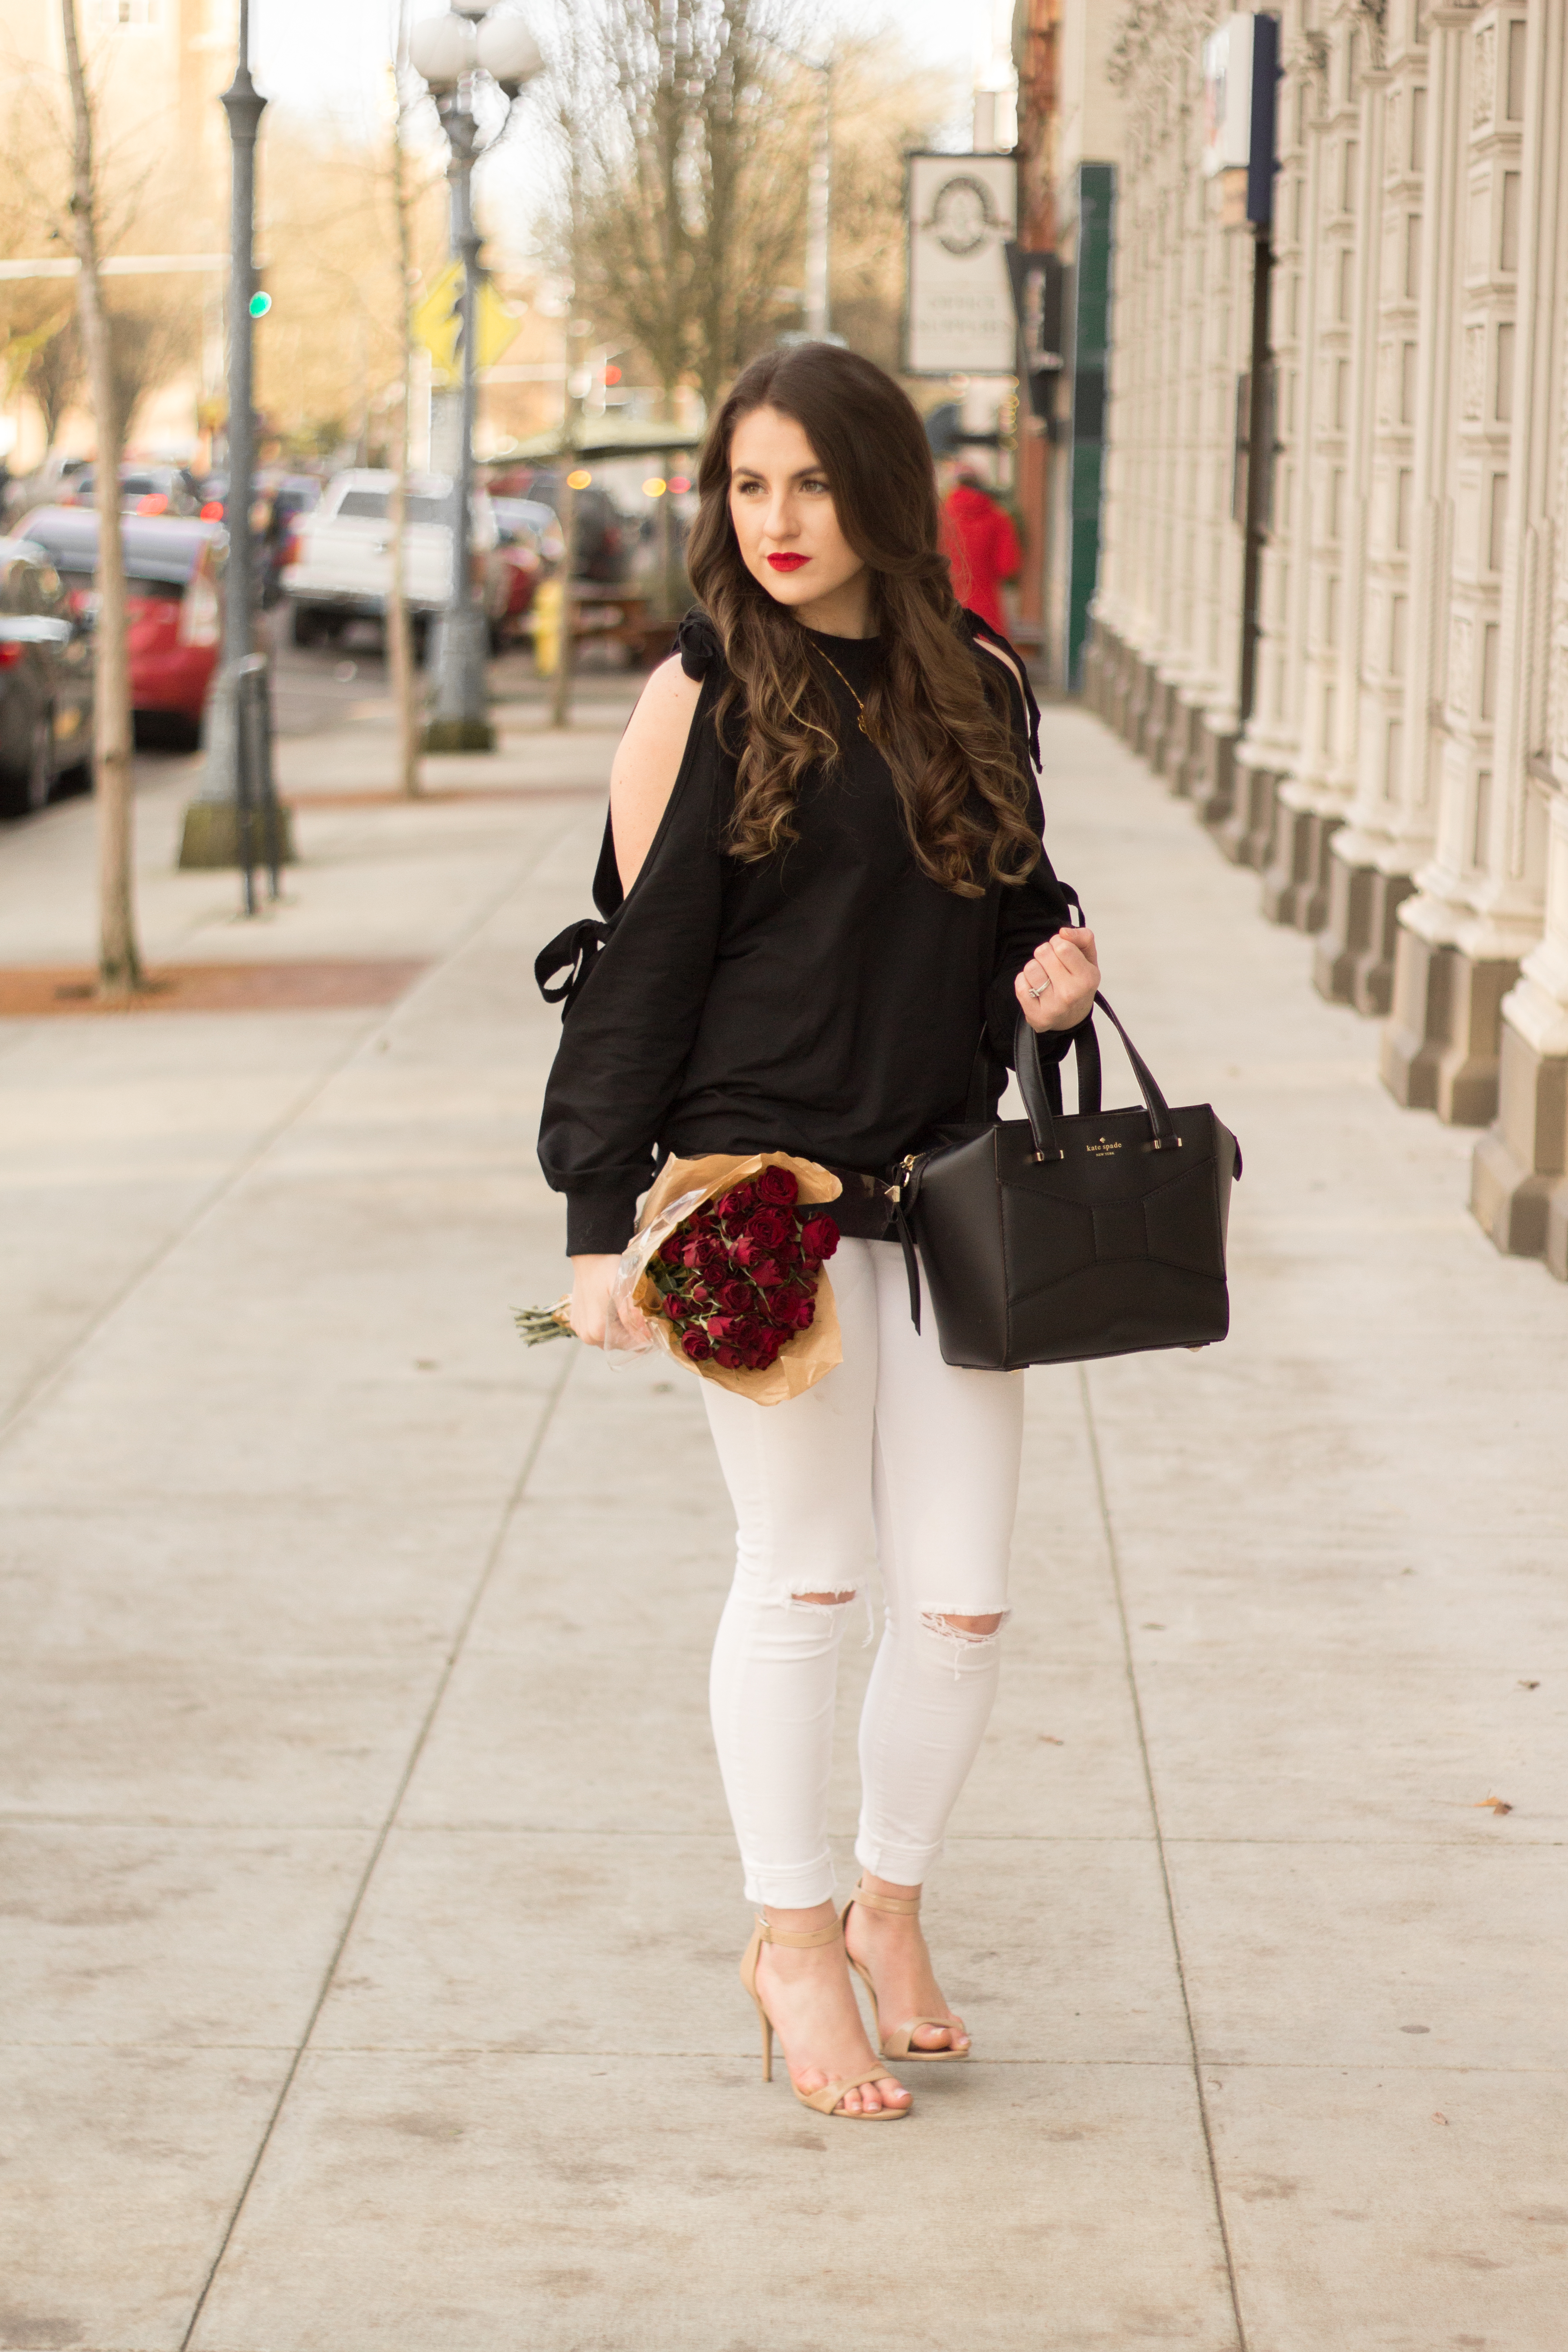 The perfect subtle Valentine's Day look with bows on your sleeves and red roses.